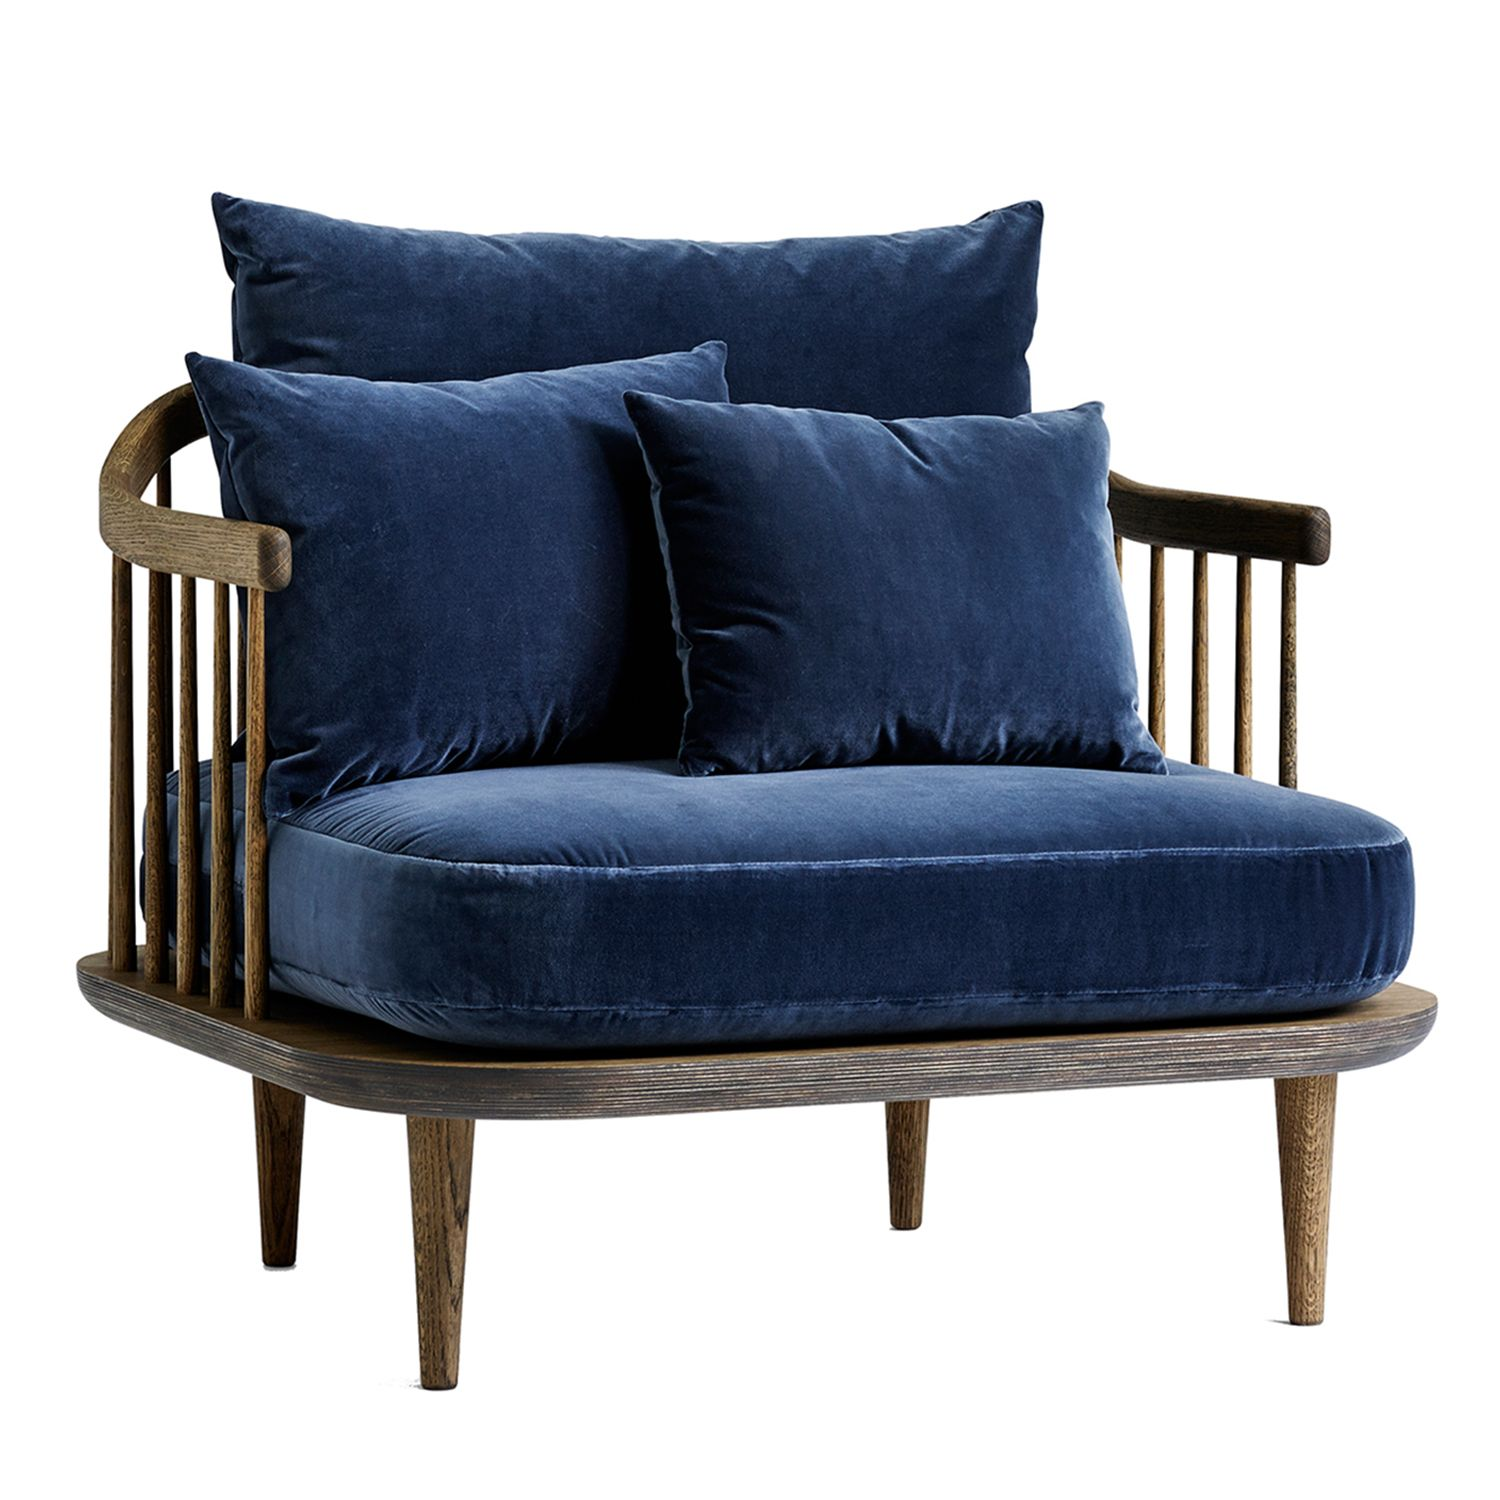 tradition Fly fauteuil SC1